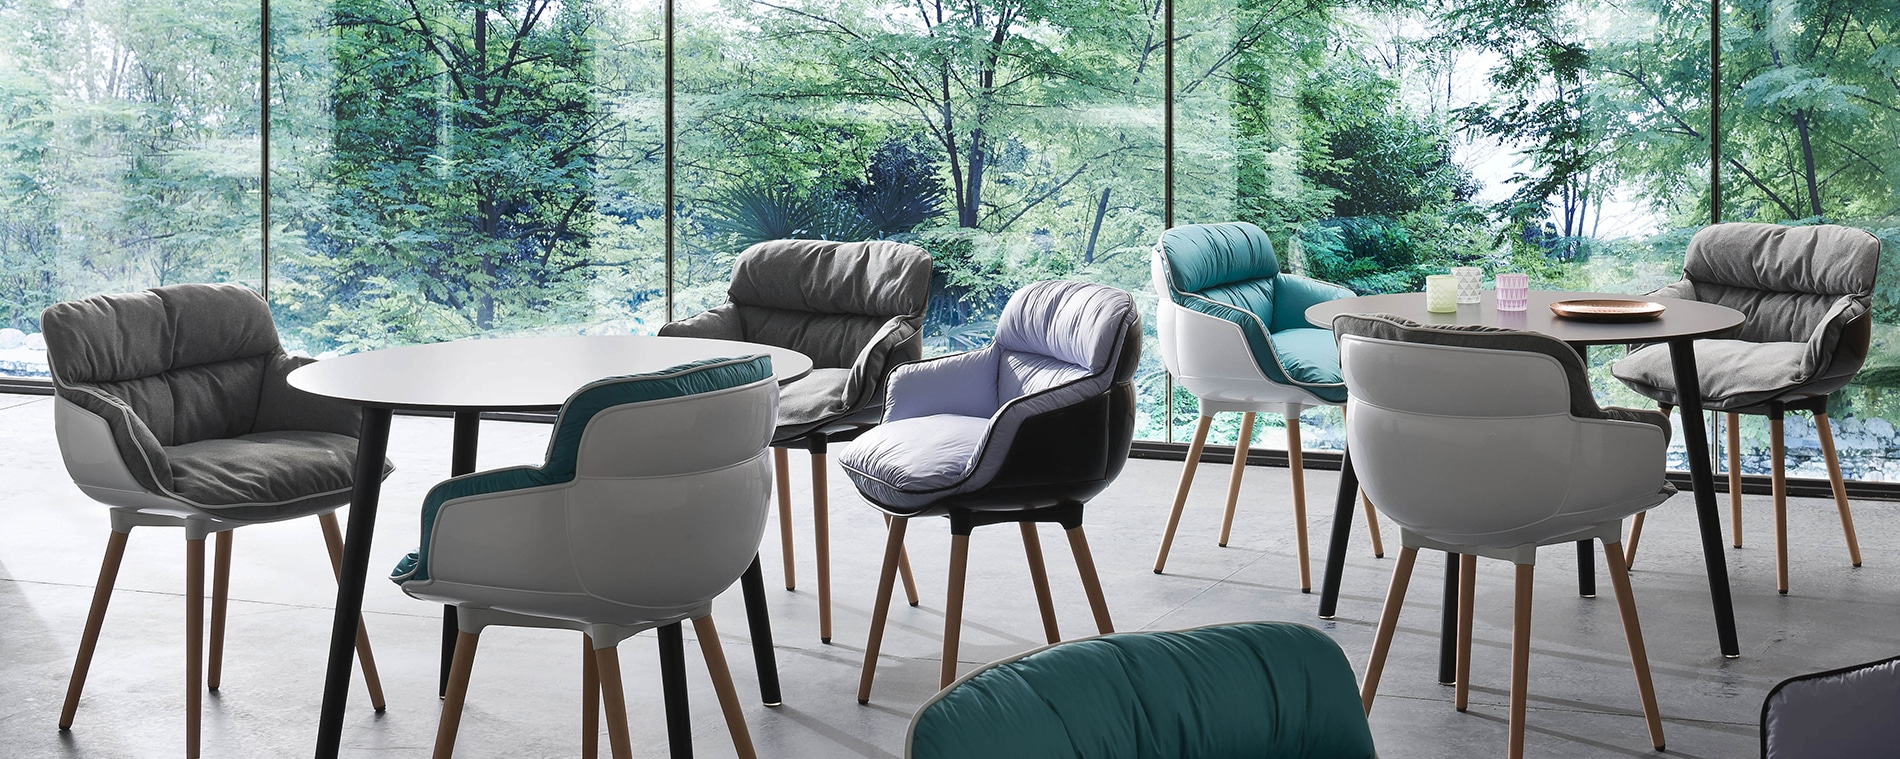 Choppy Chairs are a very comfortable addition to your other hospitality furniture